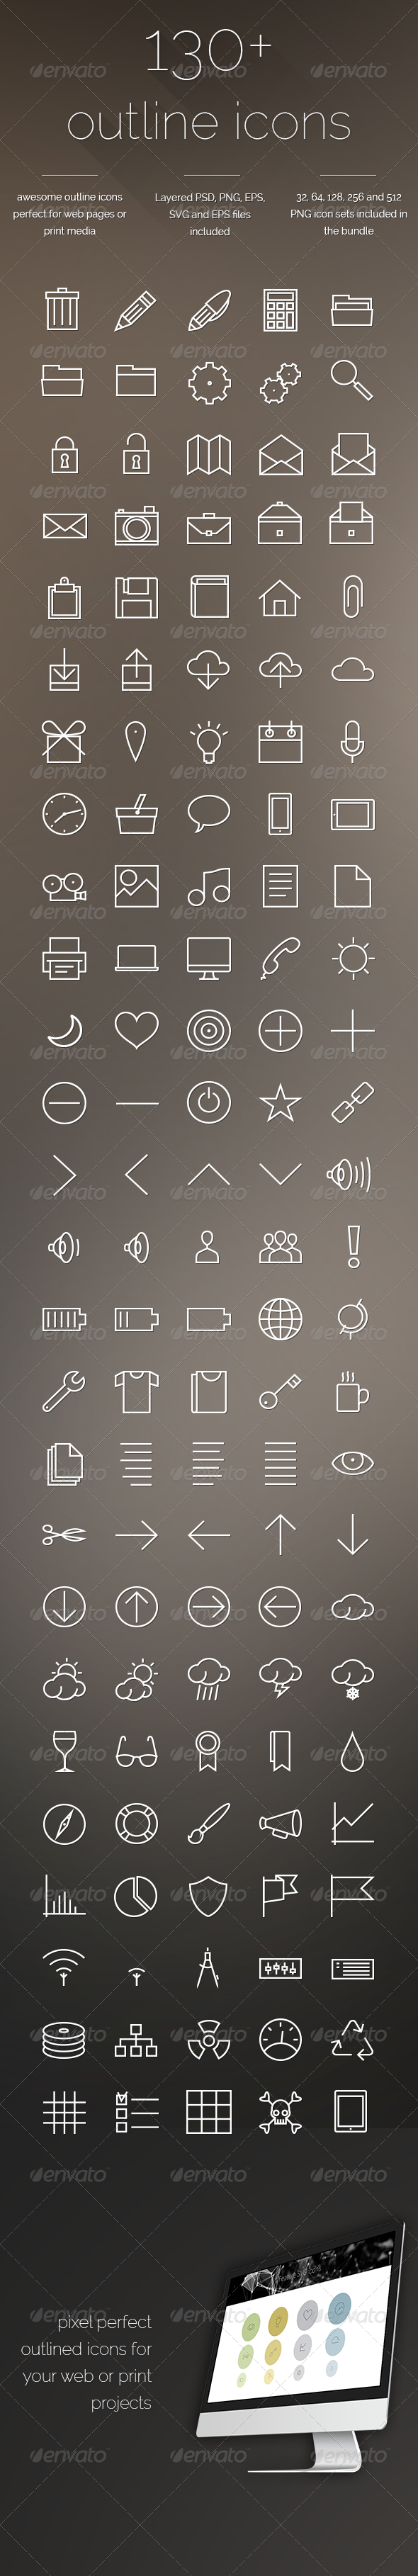 Outline Icons - Set of 130+ icons